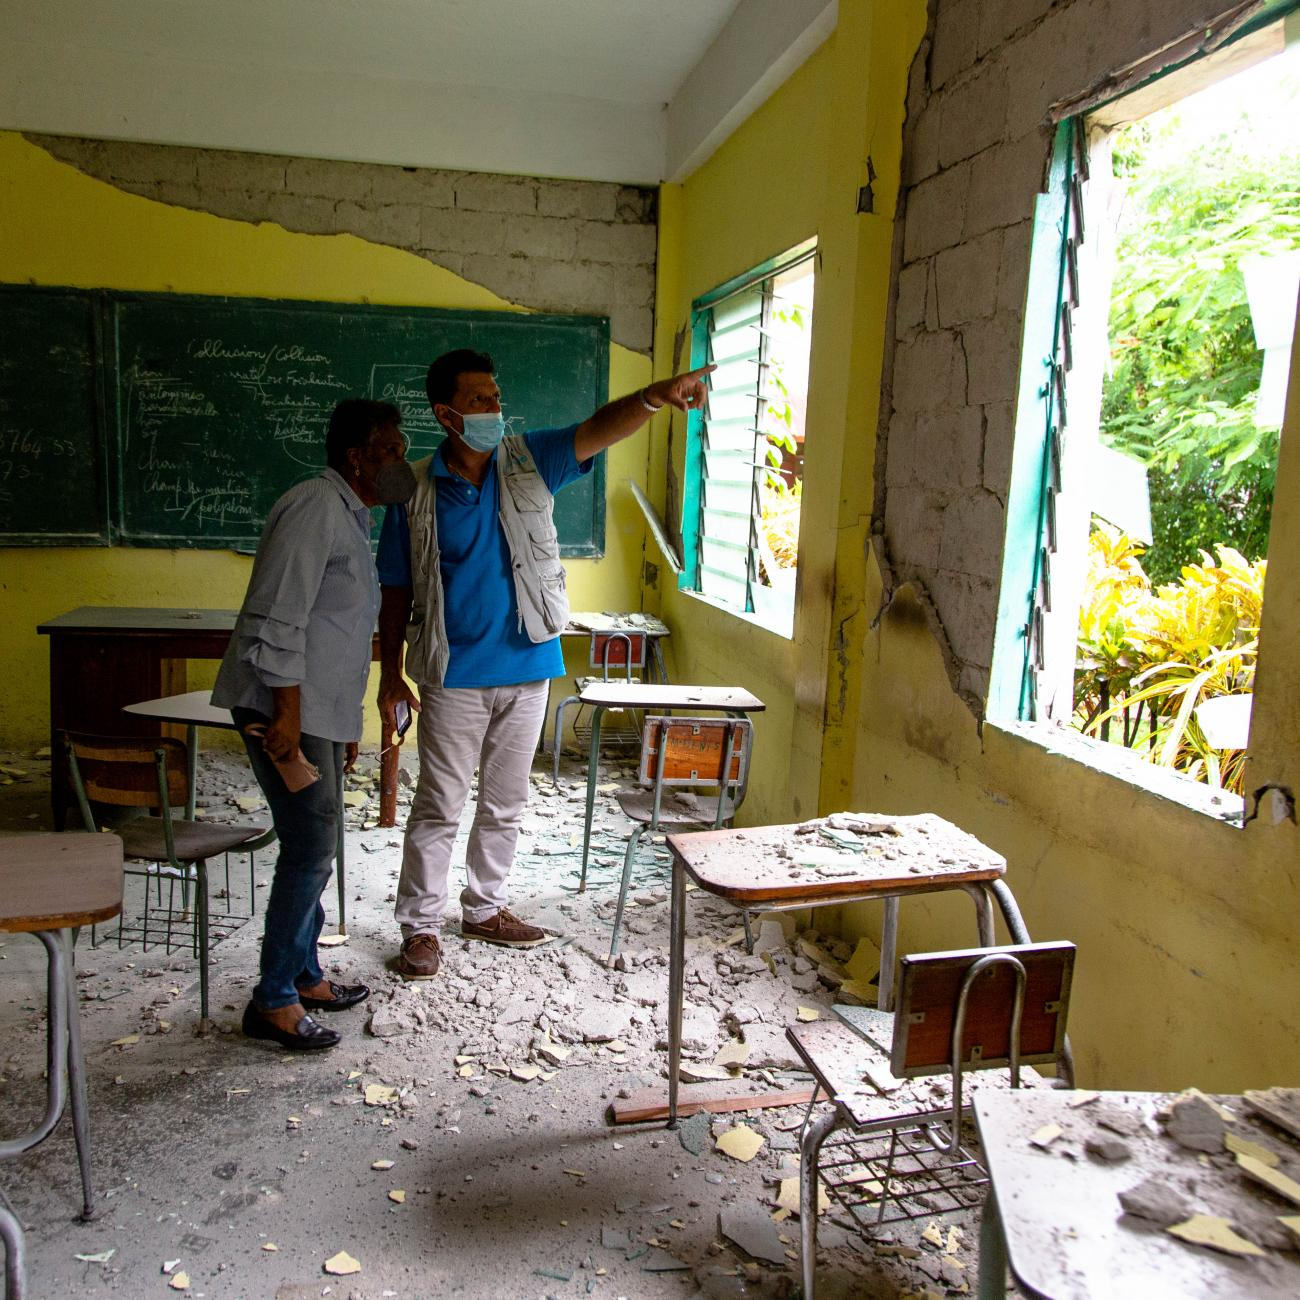 UNICEF's Bruno Maes and Haiti Minister of Education Marie Lucie Joseph tour earthquake damage at the College Mazenod in Camp-Perrin, Les Cayes, Haiti, on August 17, 2021.